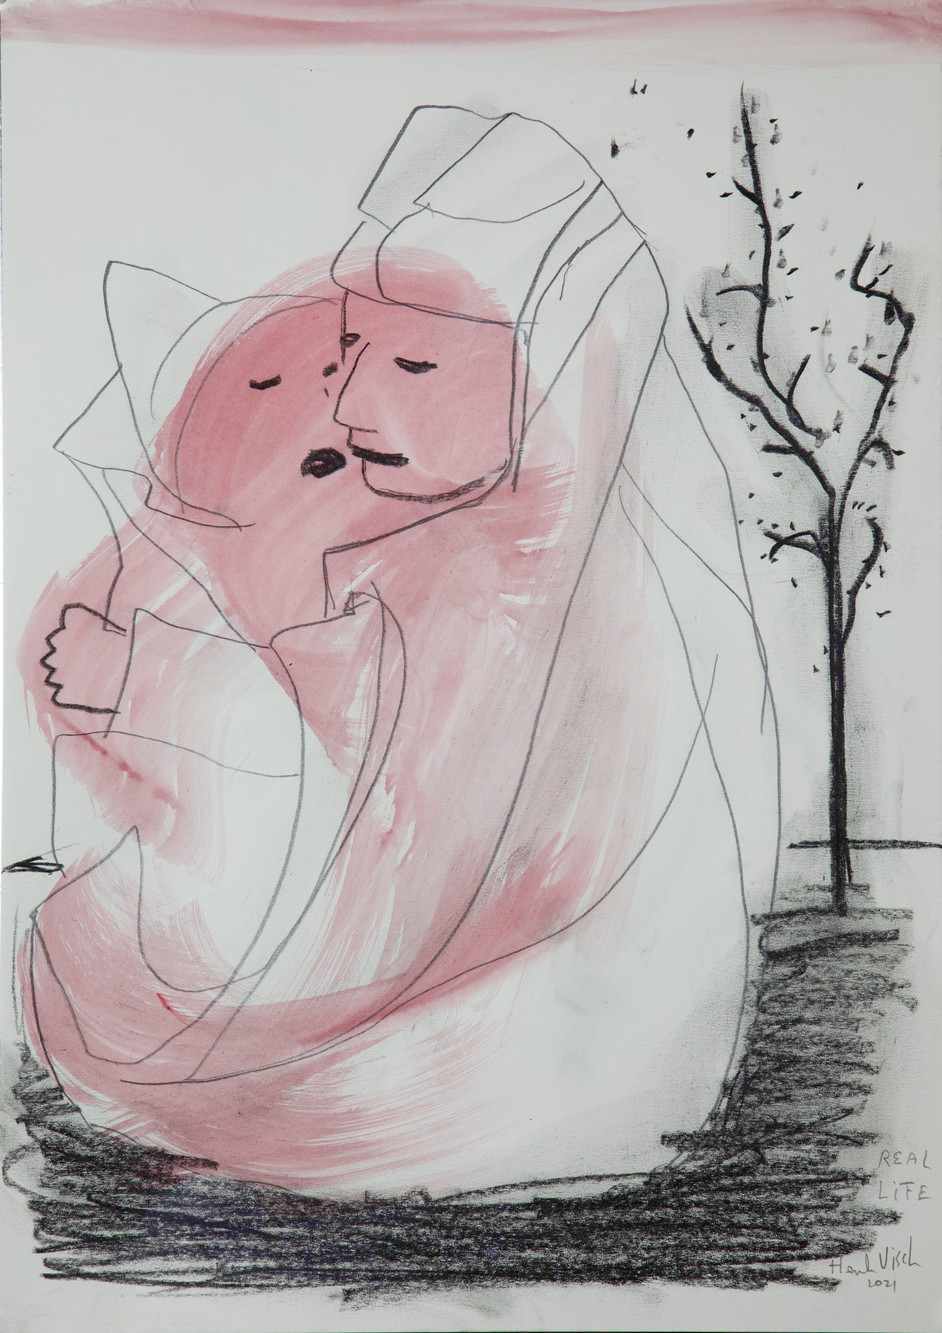 HENK VISCH Real life, 2021 water color, ink and pencil on paper 42 x 29,7 cm